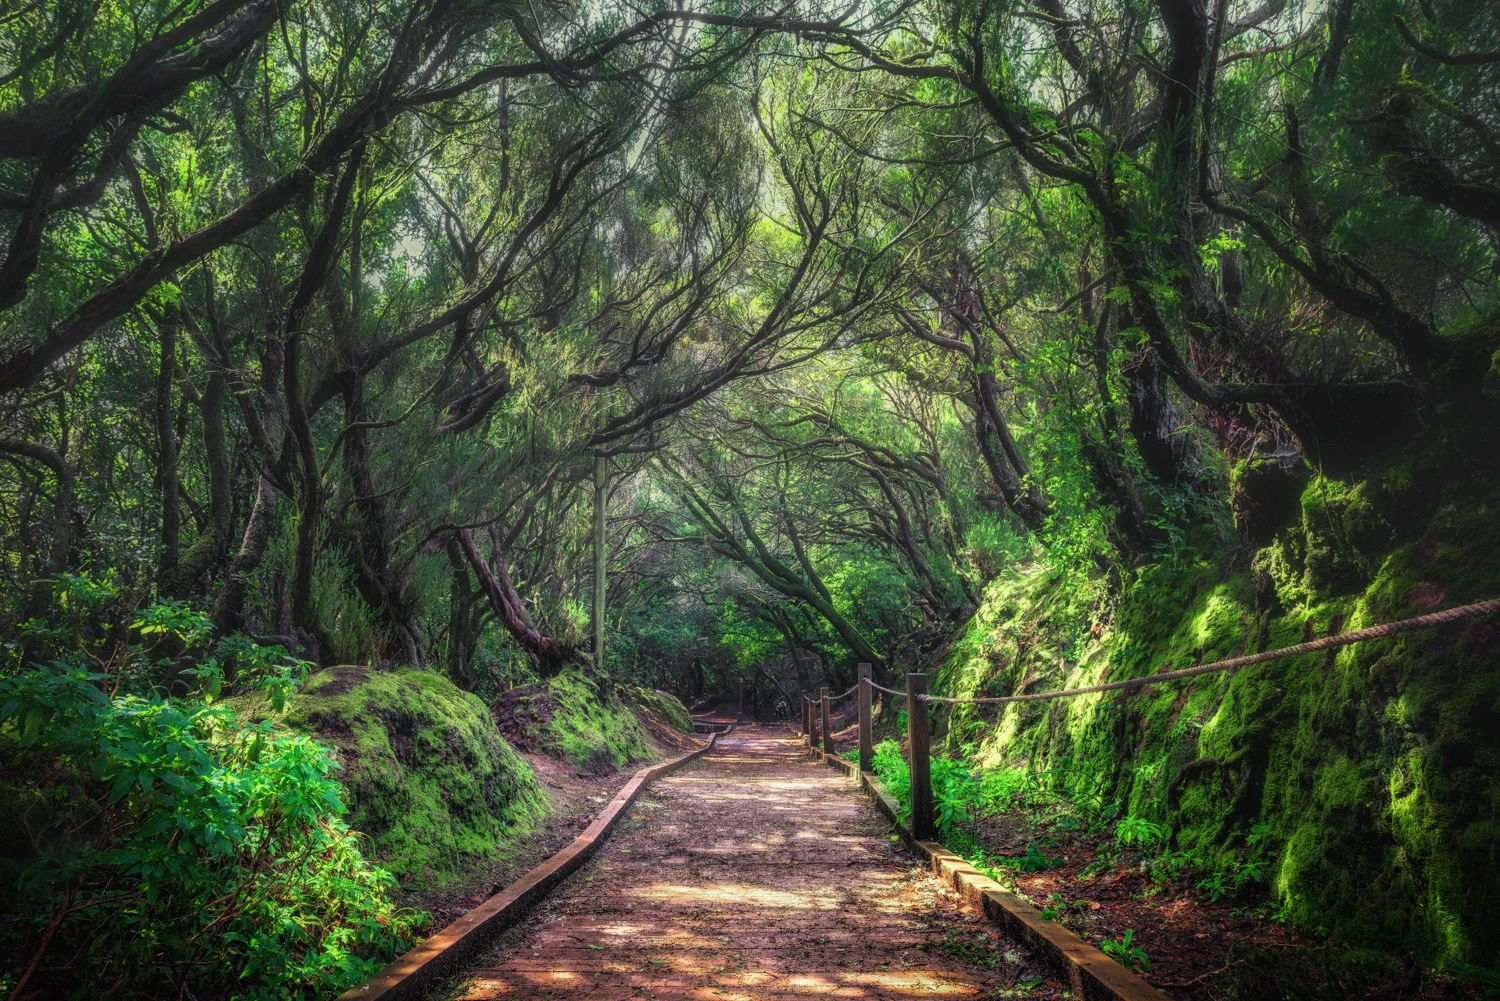 Download tropical evergreen forest images and photos. Laurel Forest Evergreen Forest Nature Forest